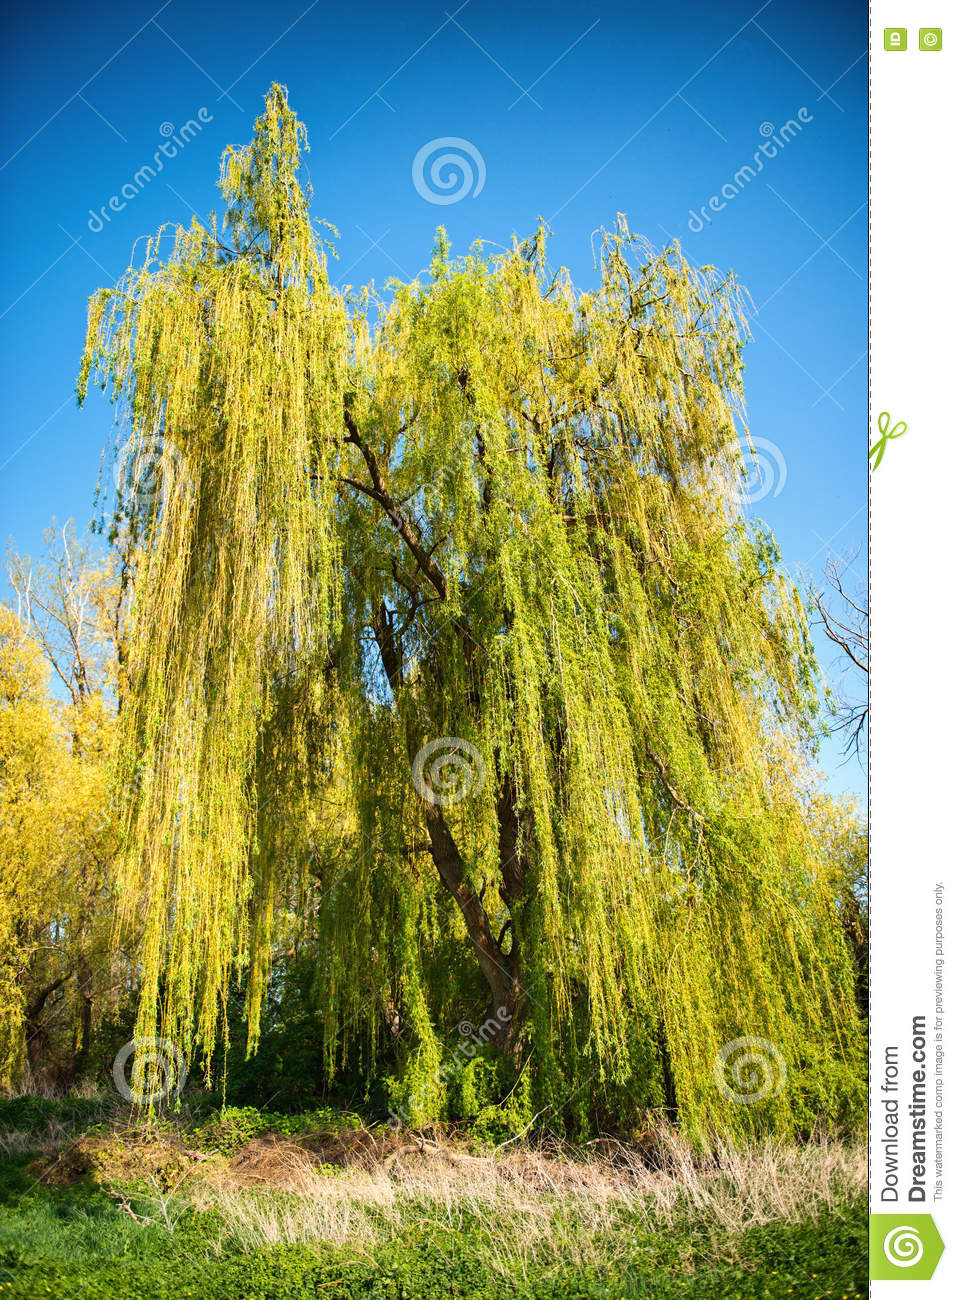 Weeping willow tree with spring foliage